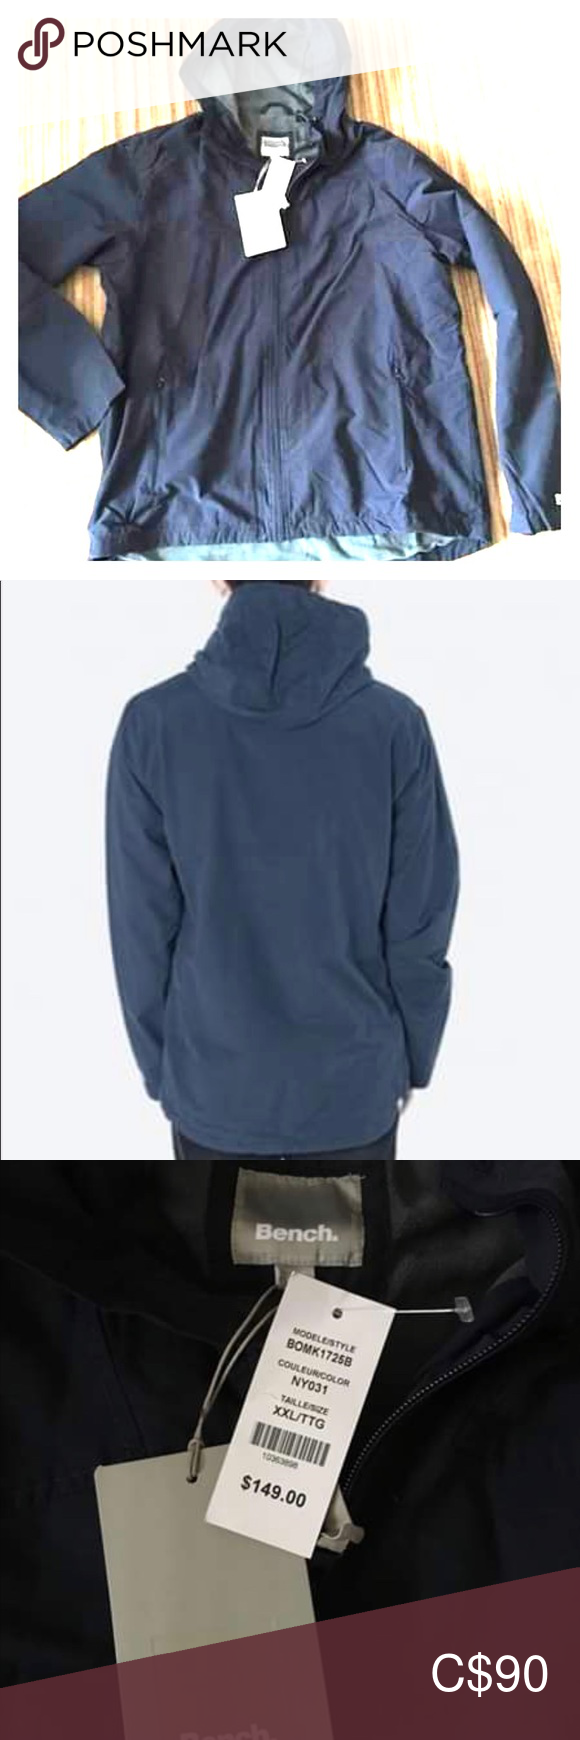 Men S Bench Jacket Size Xxl New With Tags Bench Jackets Clothes Design Jackets [ 1740 x 580 Pixel ]